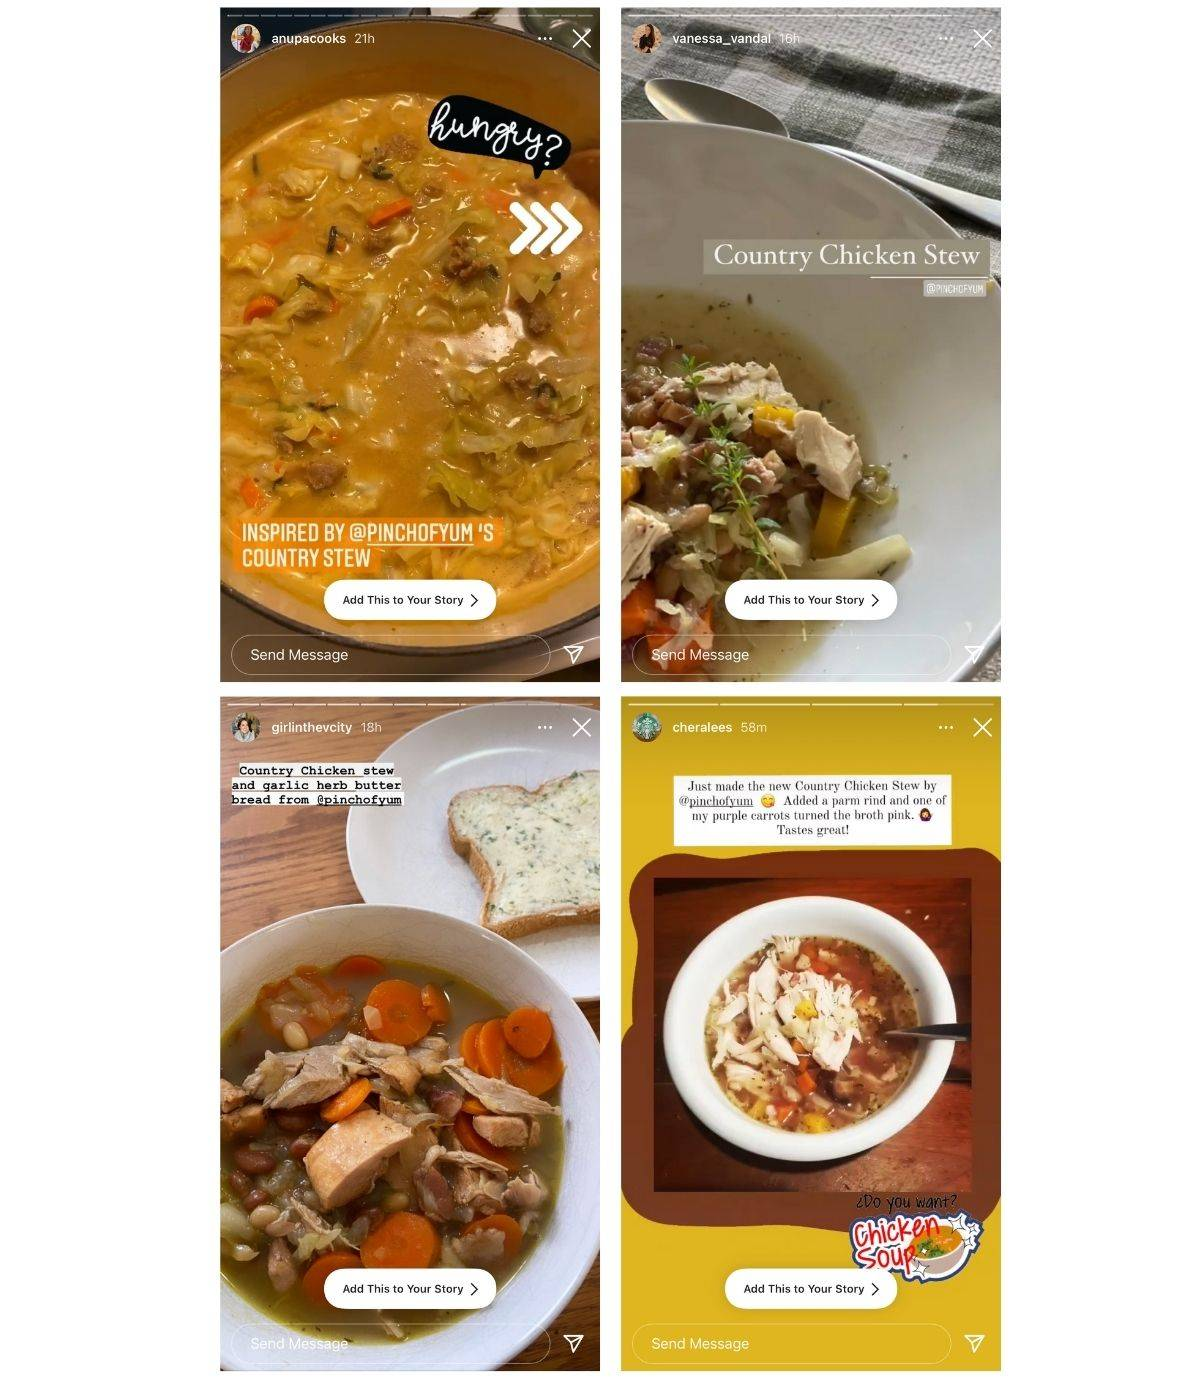 Reader images of the Chicken Country Stew recipe.